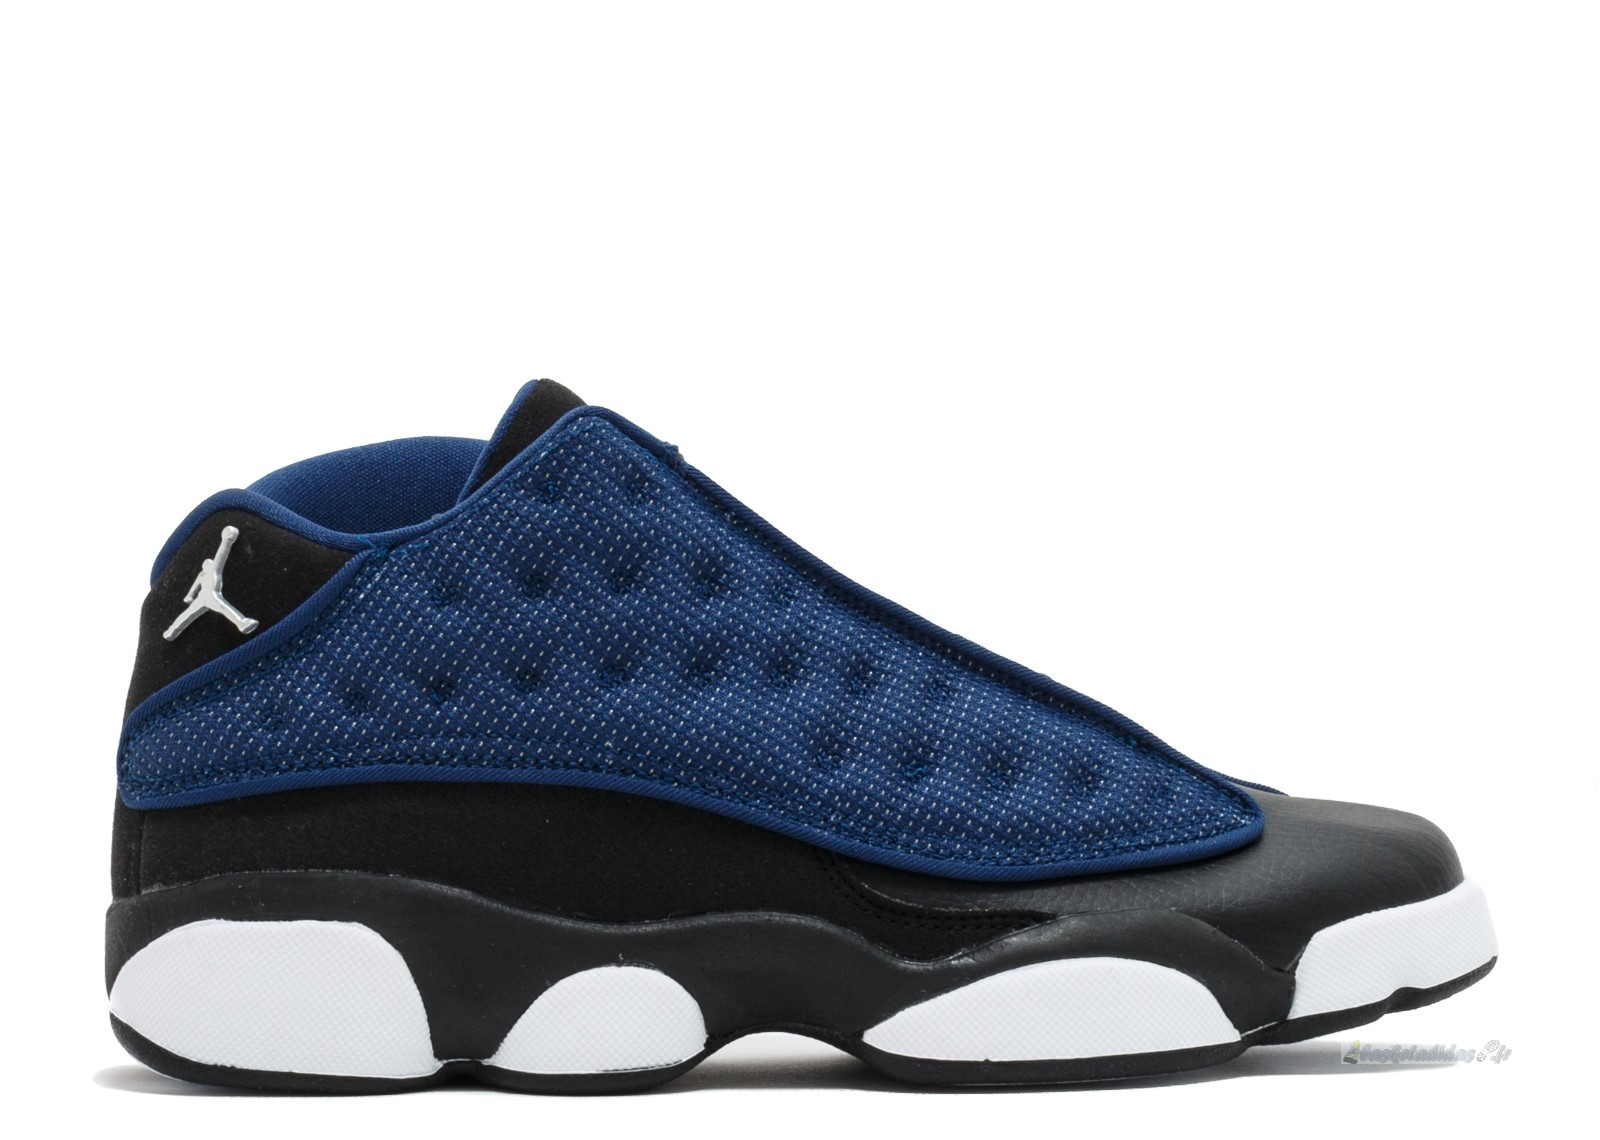 Chaussure de Basket Air Jordan 13 Retro Low Bg (Gs) Bleu (310811-407)